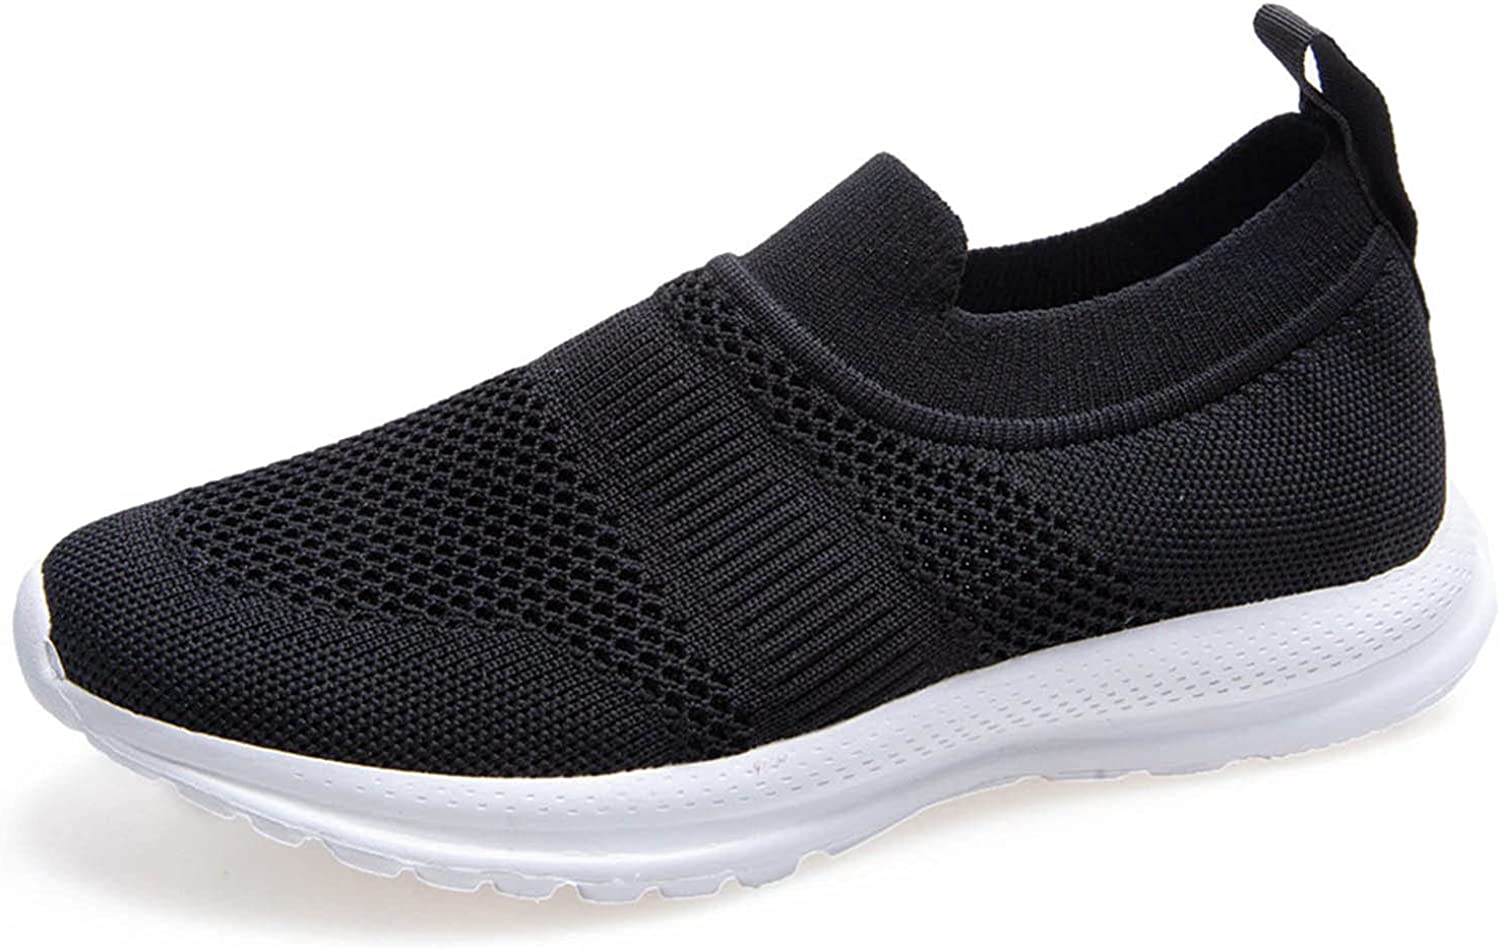 Women's Walking Shoes Slip-on Tennis Shoes Walking Running Sneakers Lightweight Breathable Casual Soft Sole Trainers